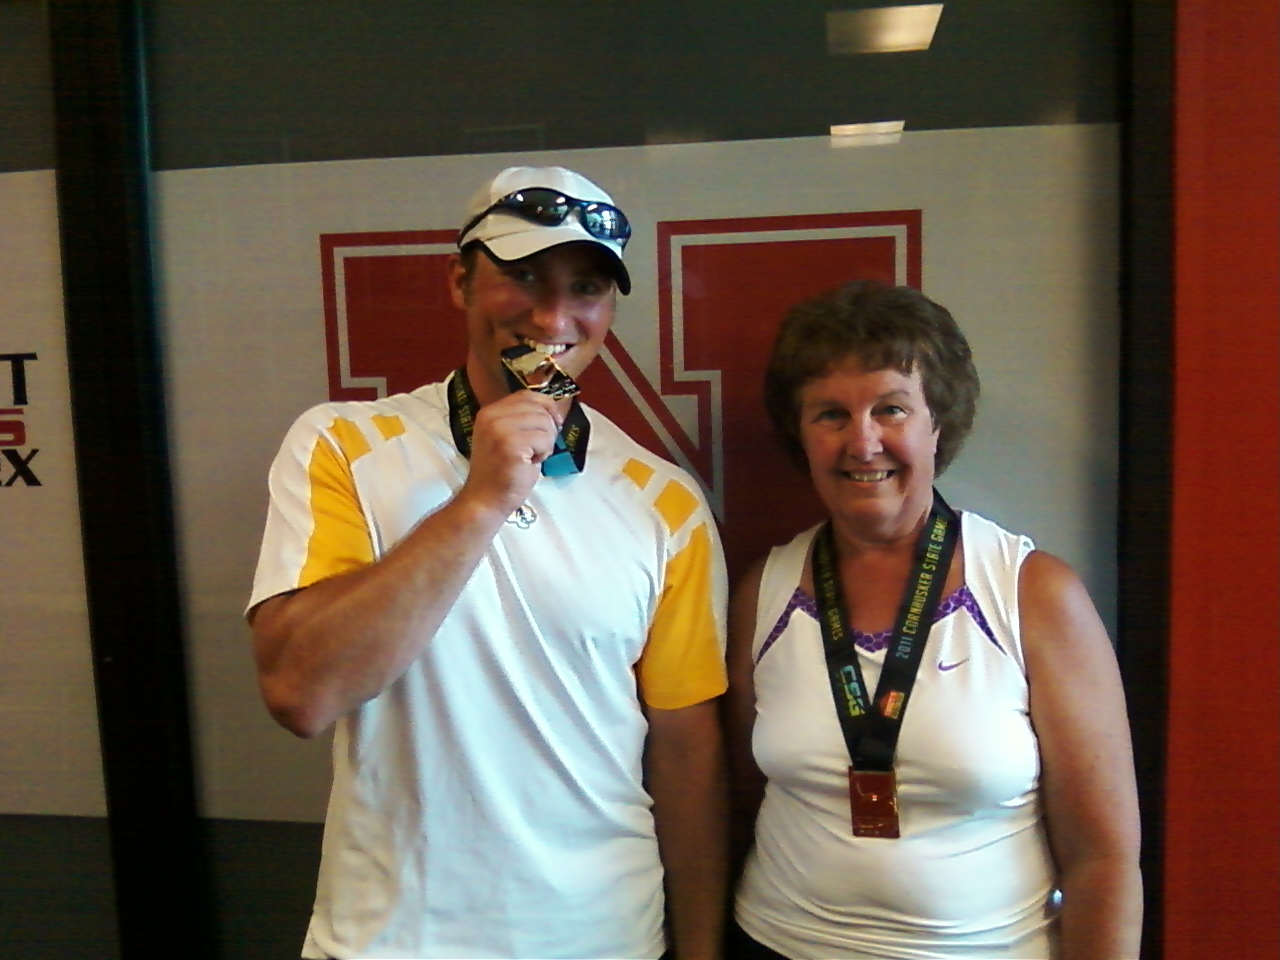 CSG Champs 2 Mark & Rohloff   Gold Medalists at 2011 Cornhusker State Games